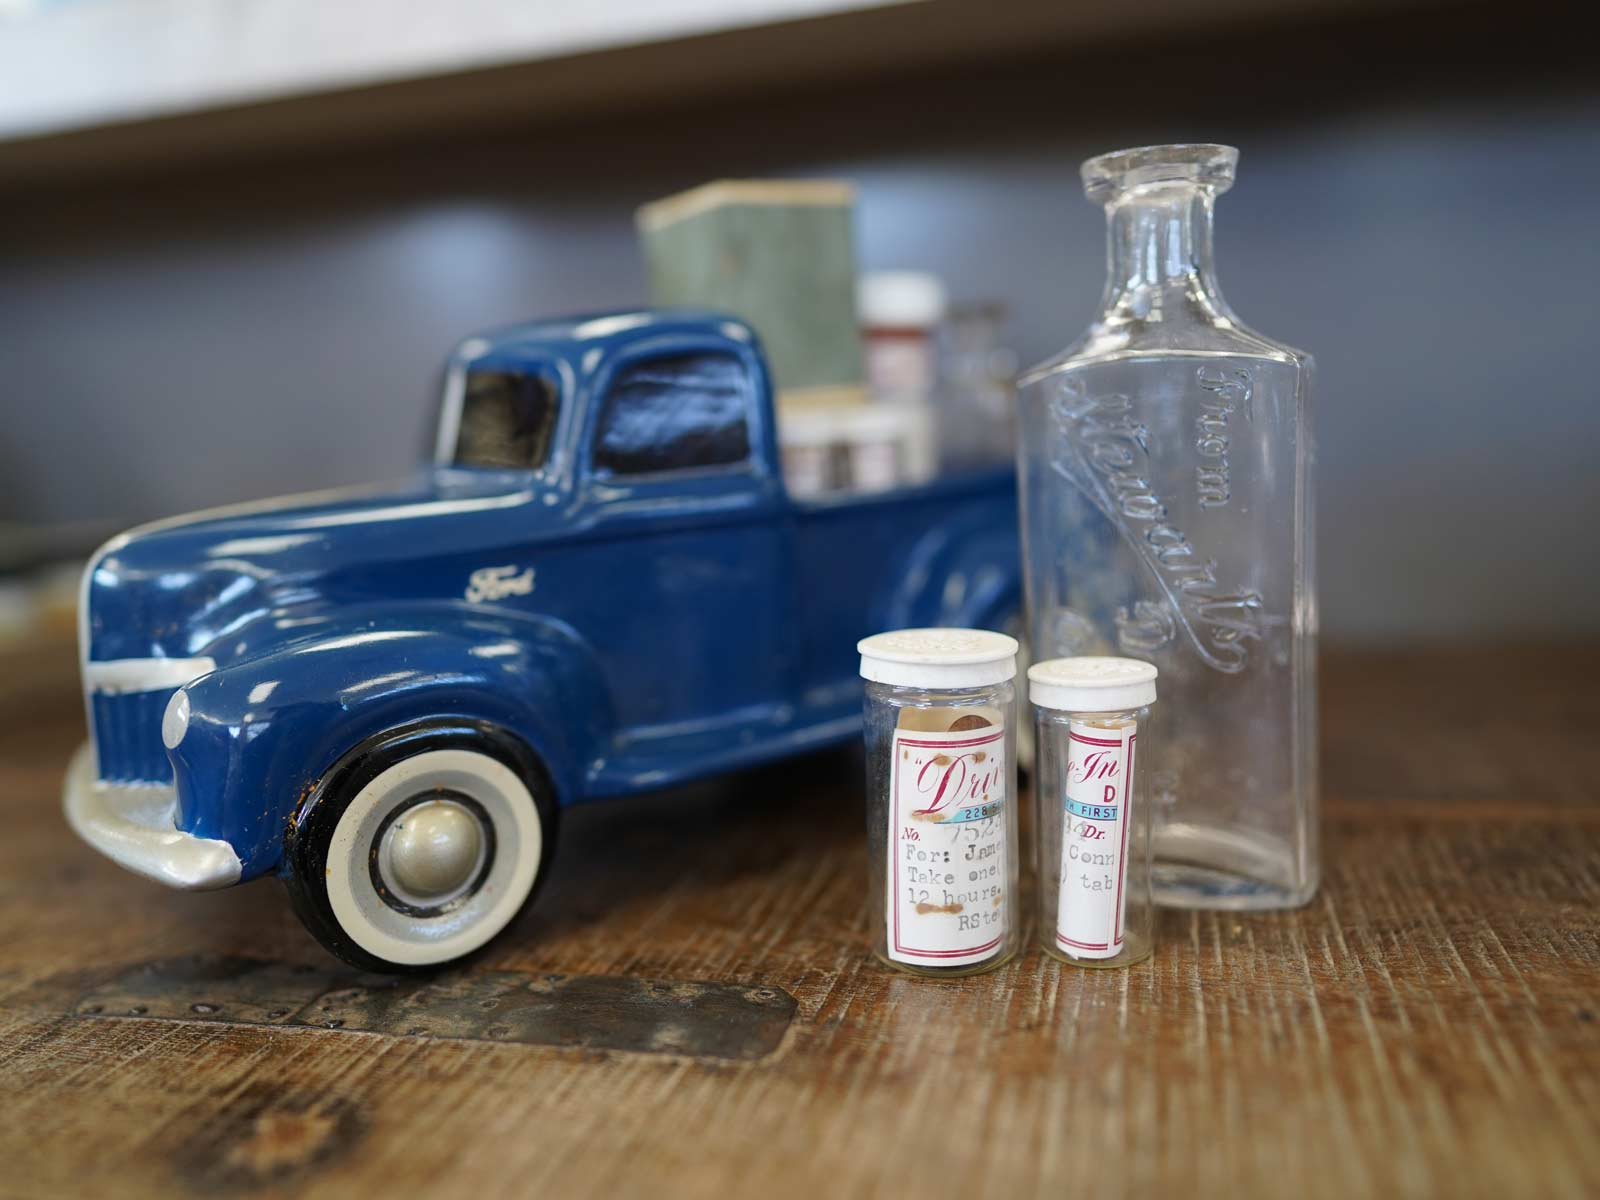 Classic Ford truck model and Drive-In Drug Store prescription bottles.